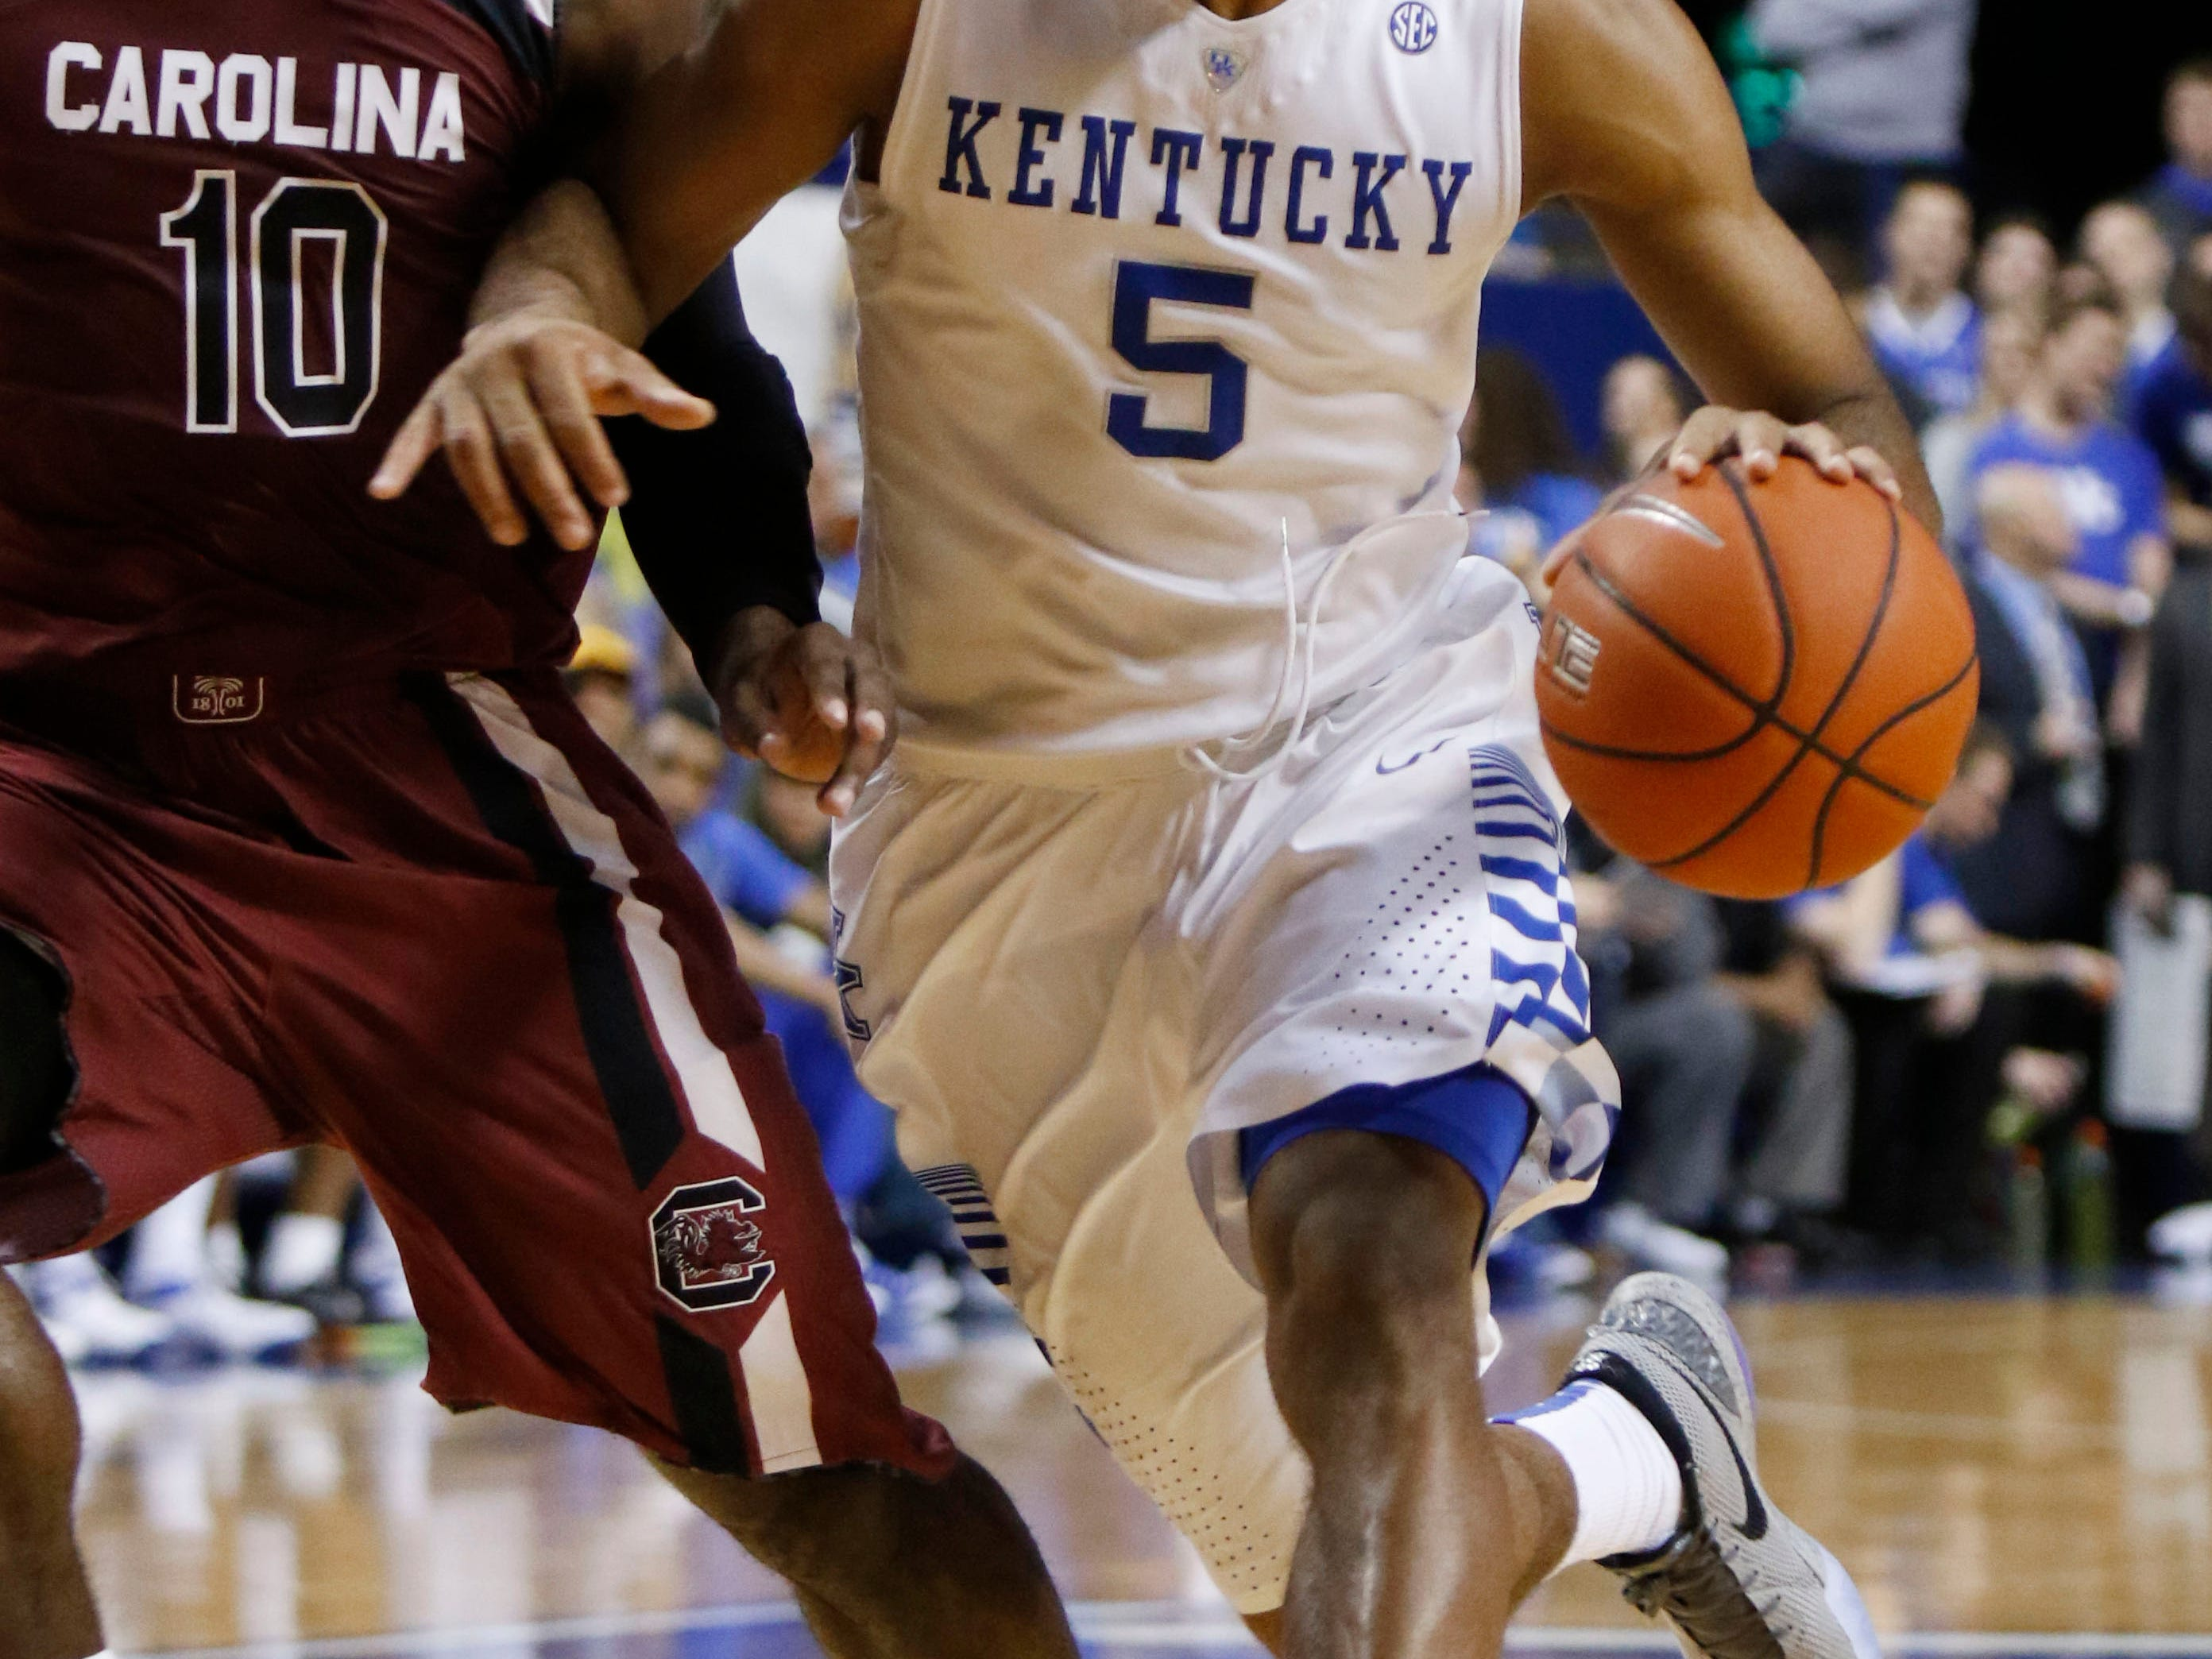 Kentucky's Andrew Harrison (5) is guarded by South Carolina's Duane Notice (10) during the first half of an NCAA college basketball game, Saturday, Feb. 14, 2015, in Lexington, Ky. (AP Photo/James Crisp)